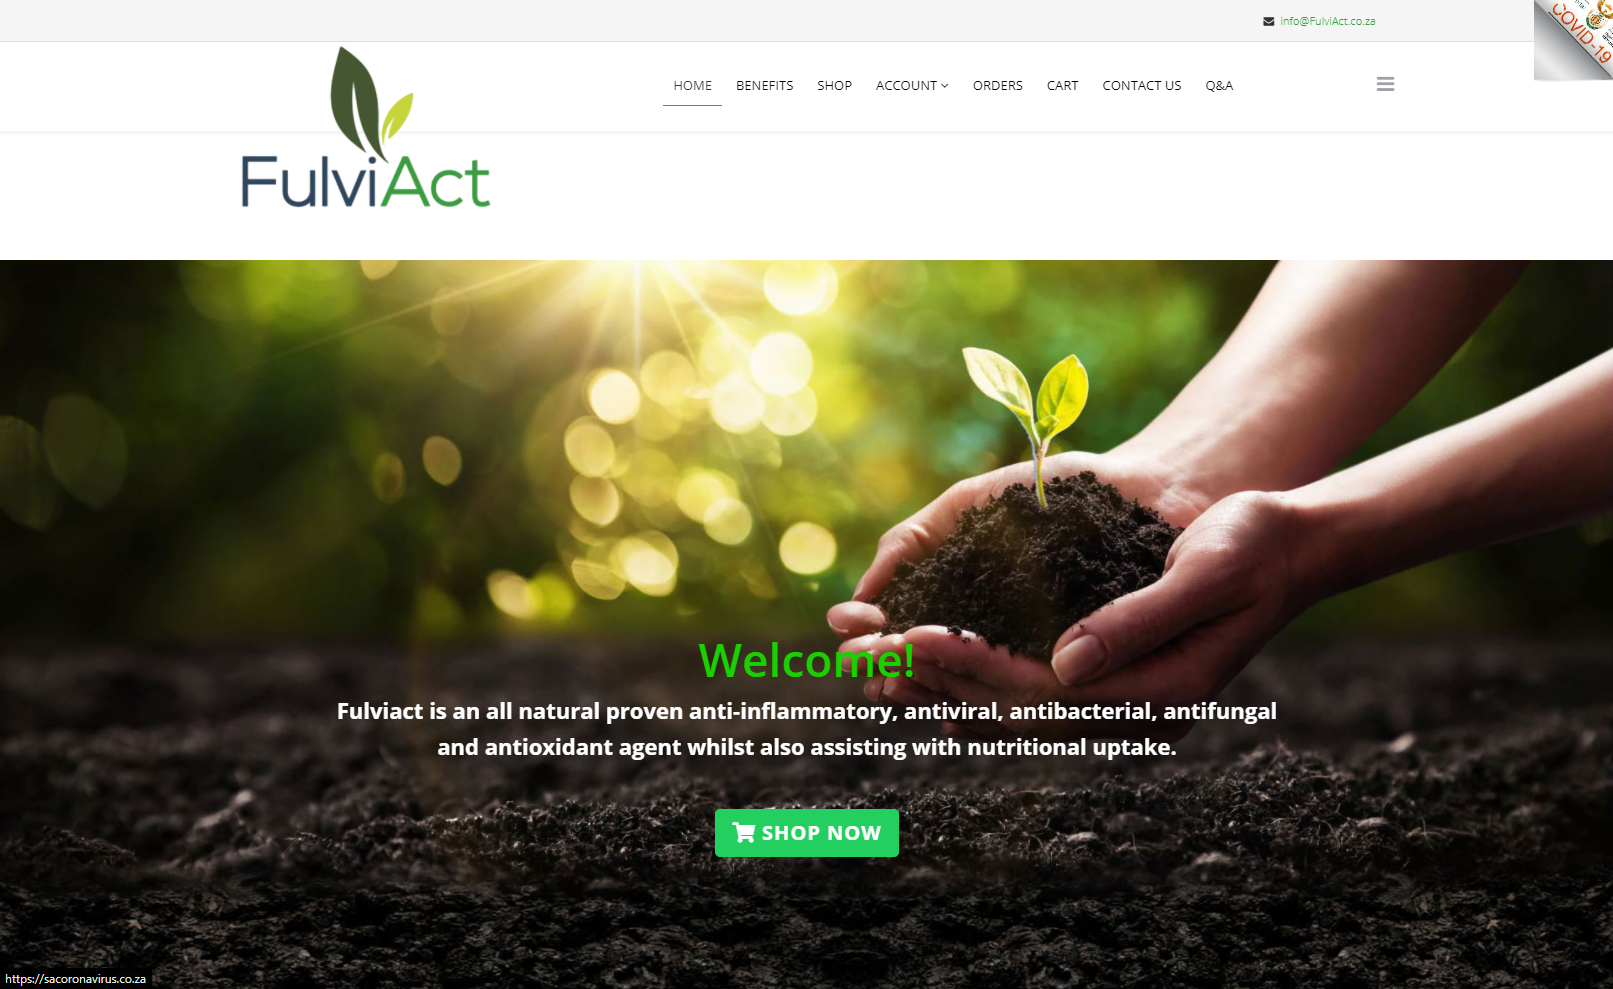 Fulviact.co.za